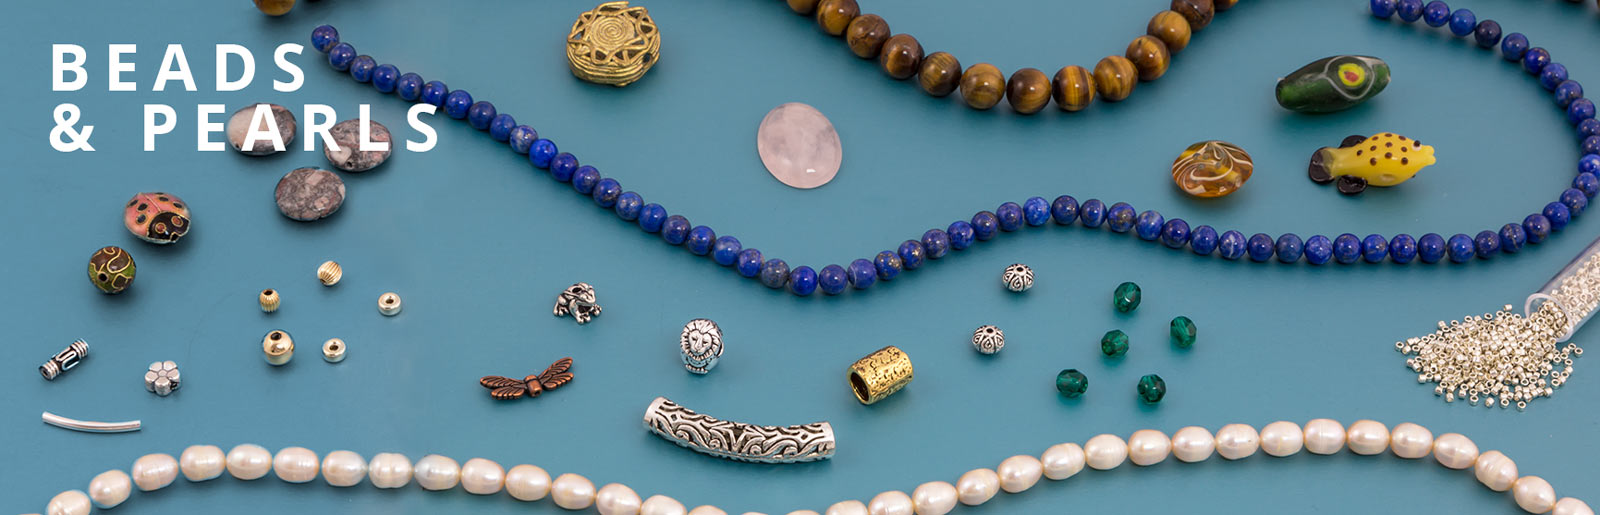 bead beads shop online img suppliers the of store